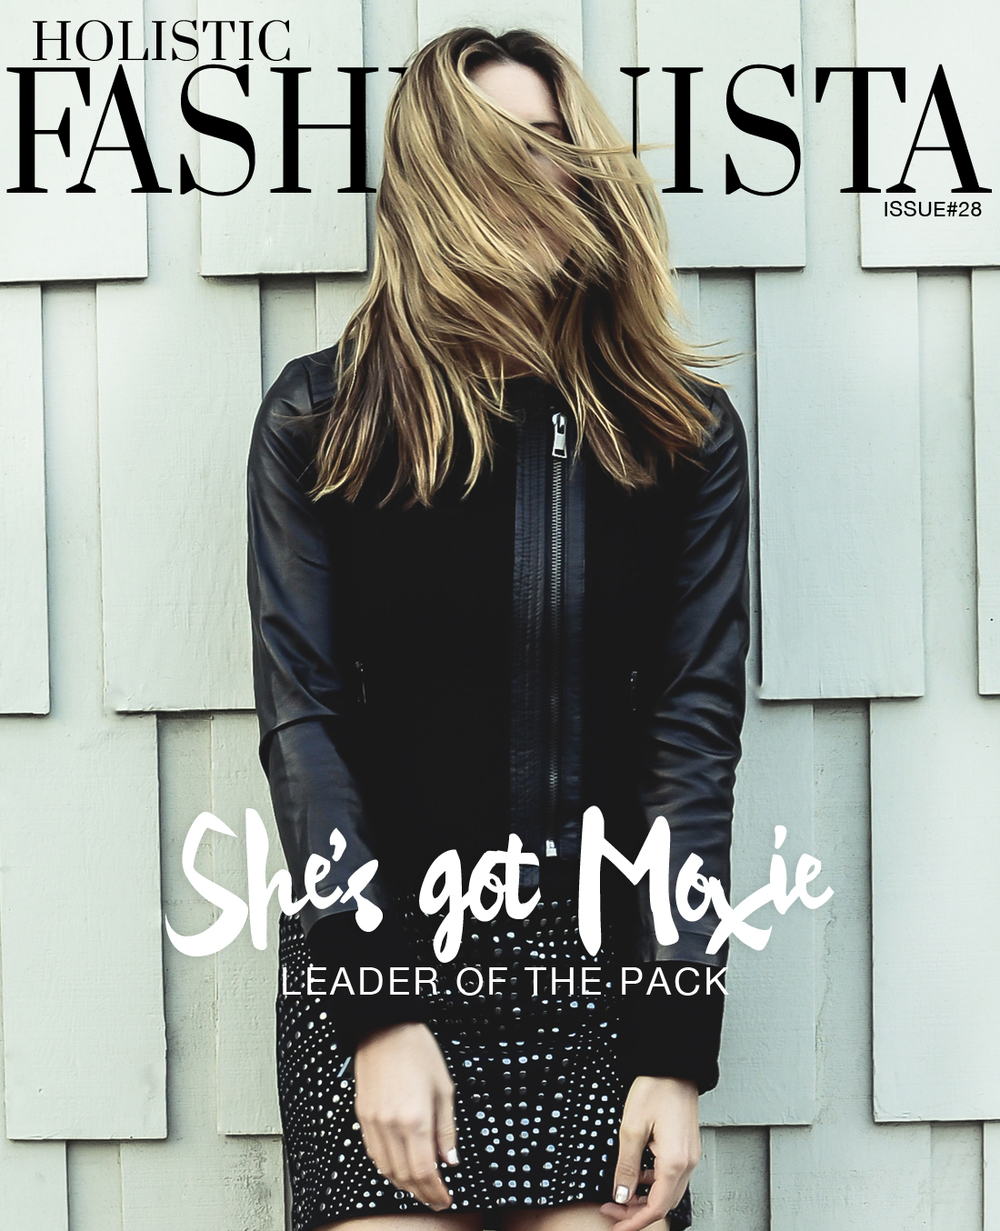 holistic-fashionista-magazine